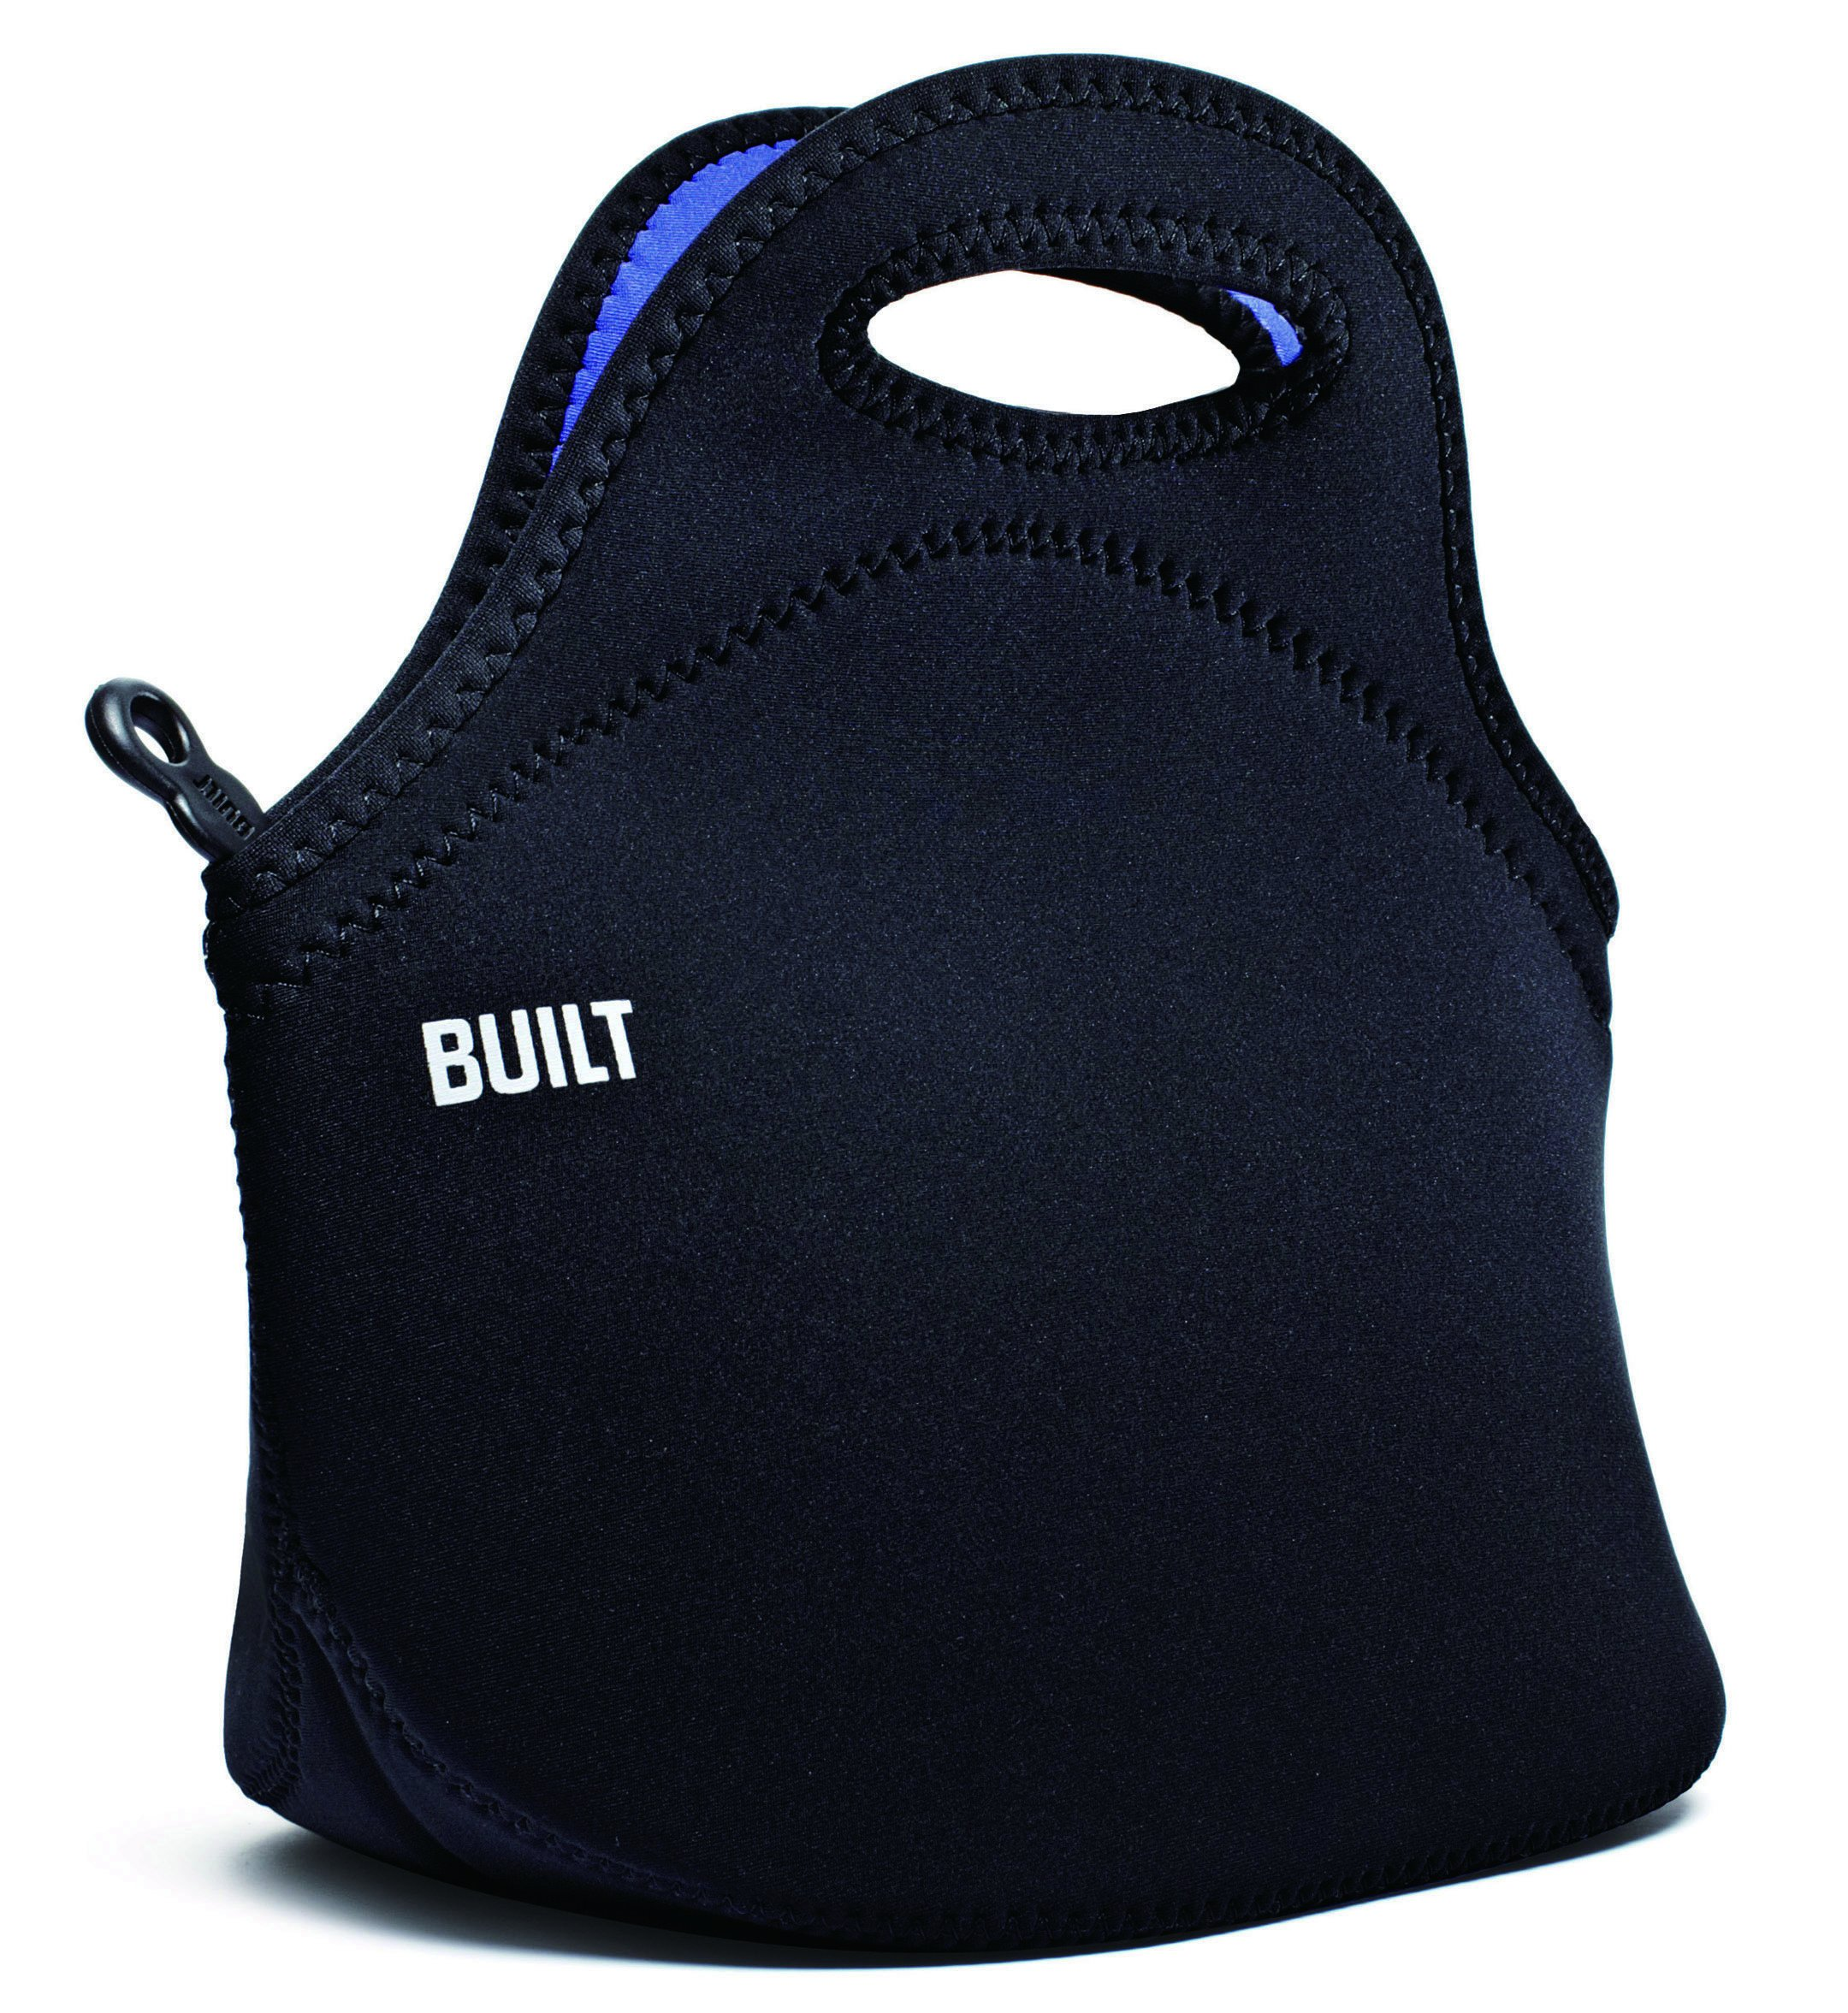 Built NY LB31-BLK Gourmet Getaway Lightweight Insulated Neoprene Lunch Tote Bag, Black by Built